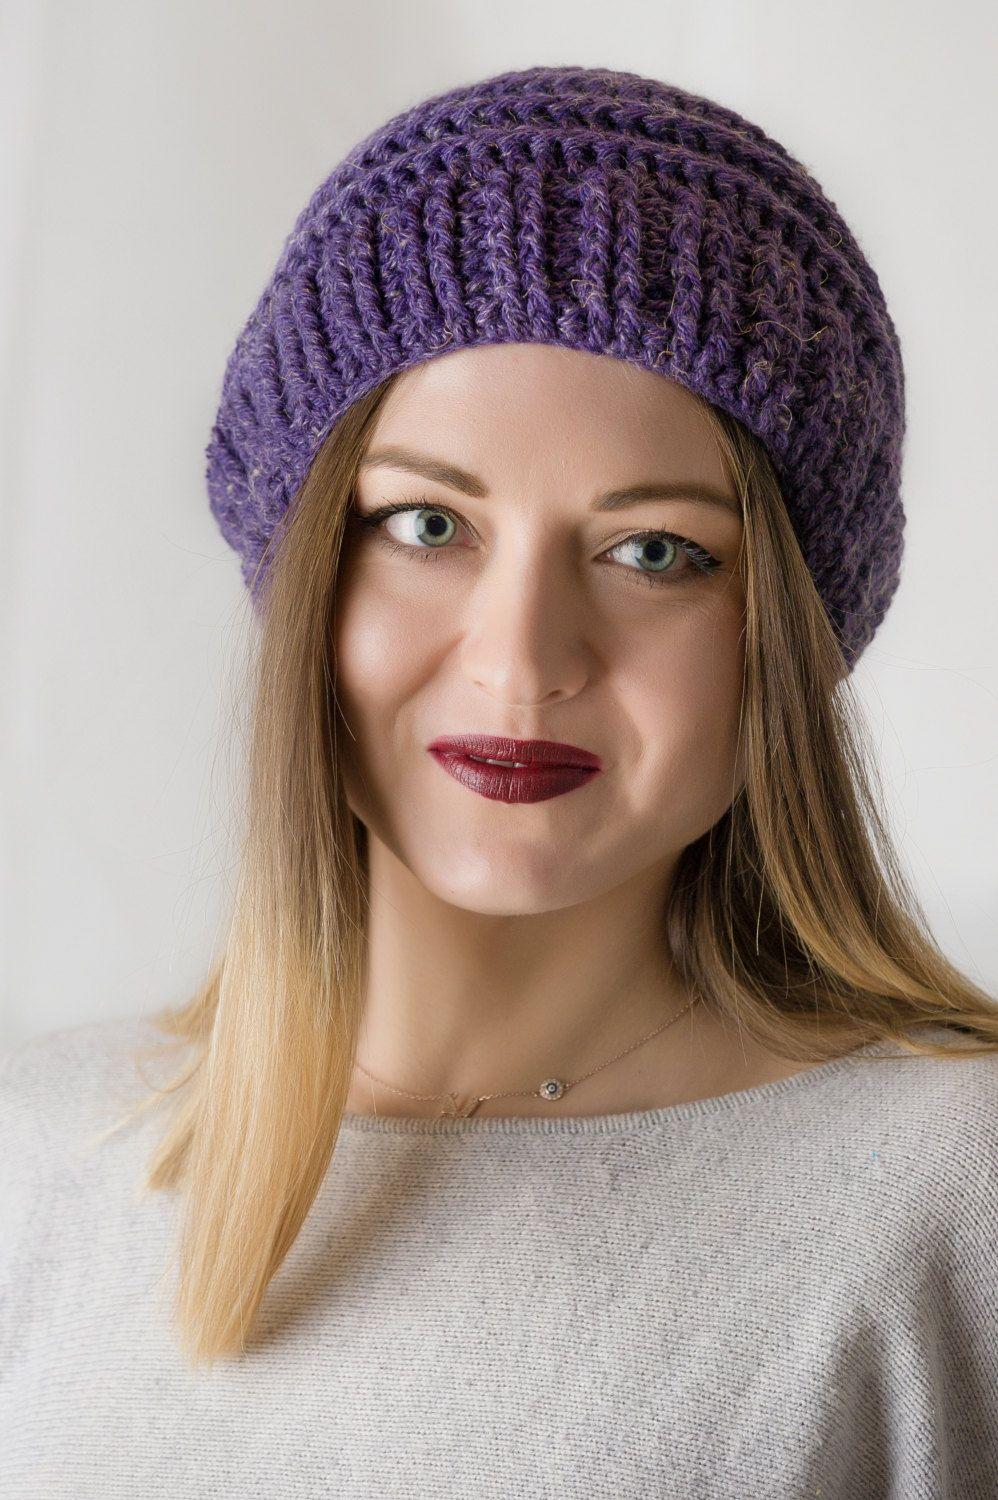 f13f70856de2a2 Purple Hat, Purple Hat Women, Purple Beanie, Slouch Beanie, Slouch Hat,  Crochet Beanie, Slouchy Beanie, Gift Ideas for Women, Beanies Women